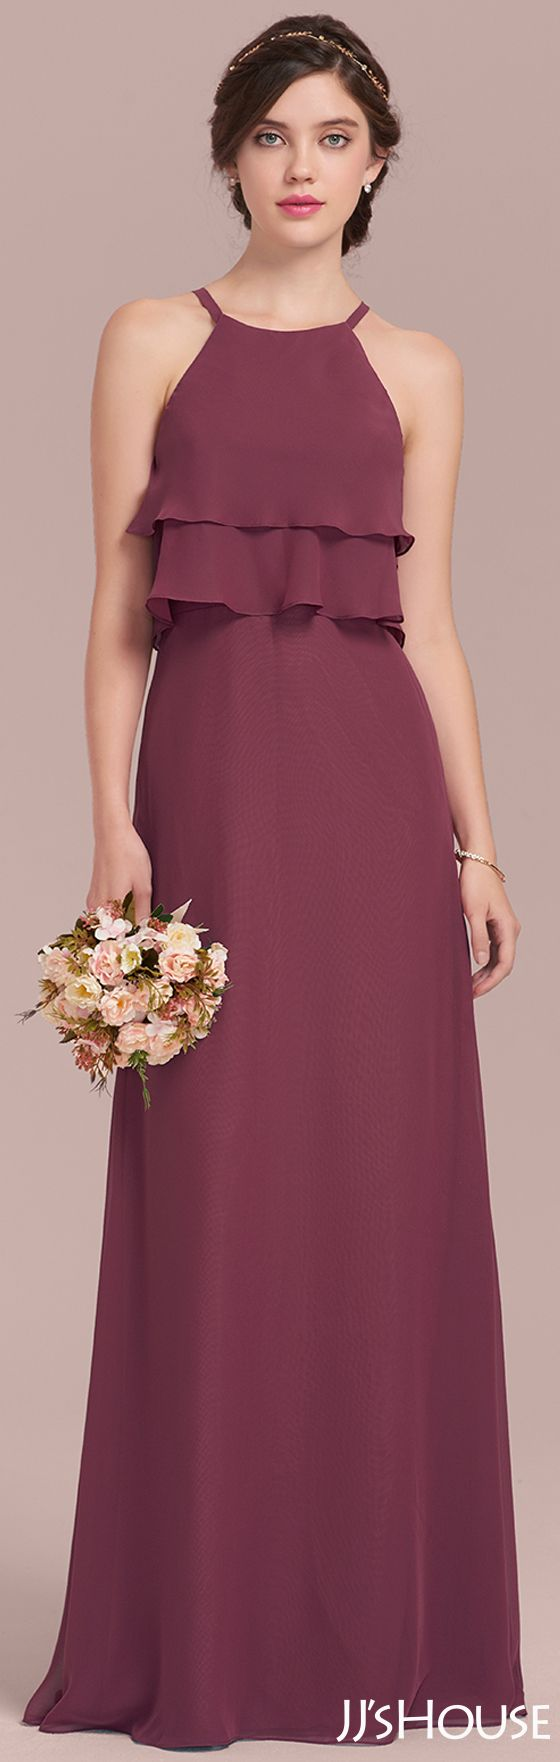 This bridesmaid dress has a perfect color and genius design! #JJsHouse #Bridesmaid